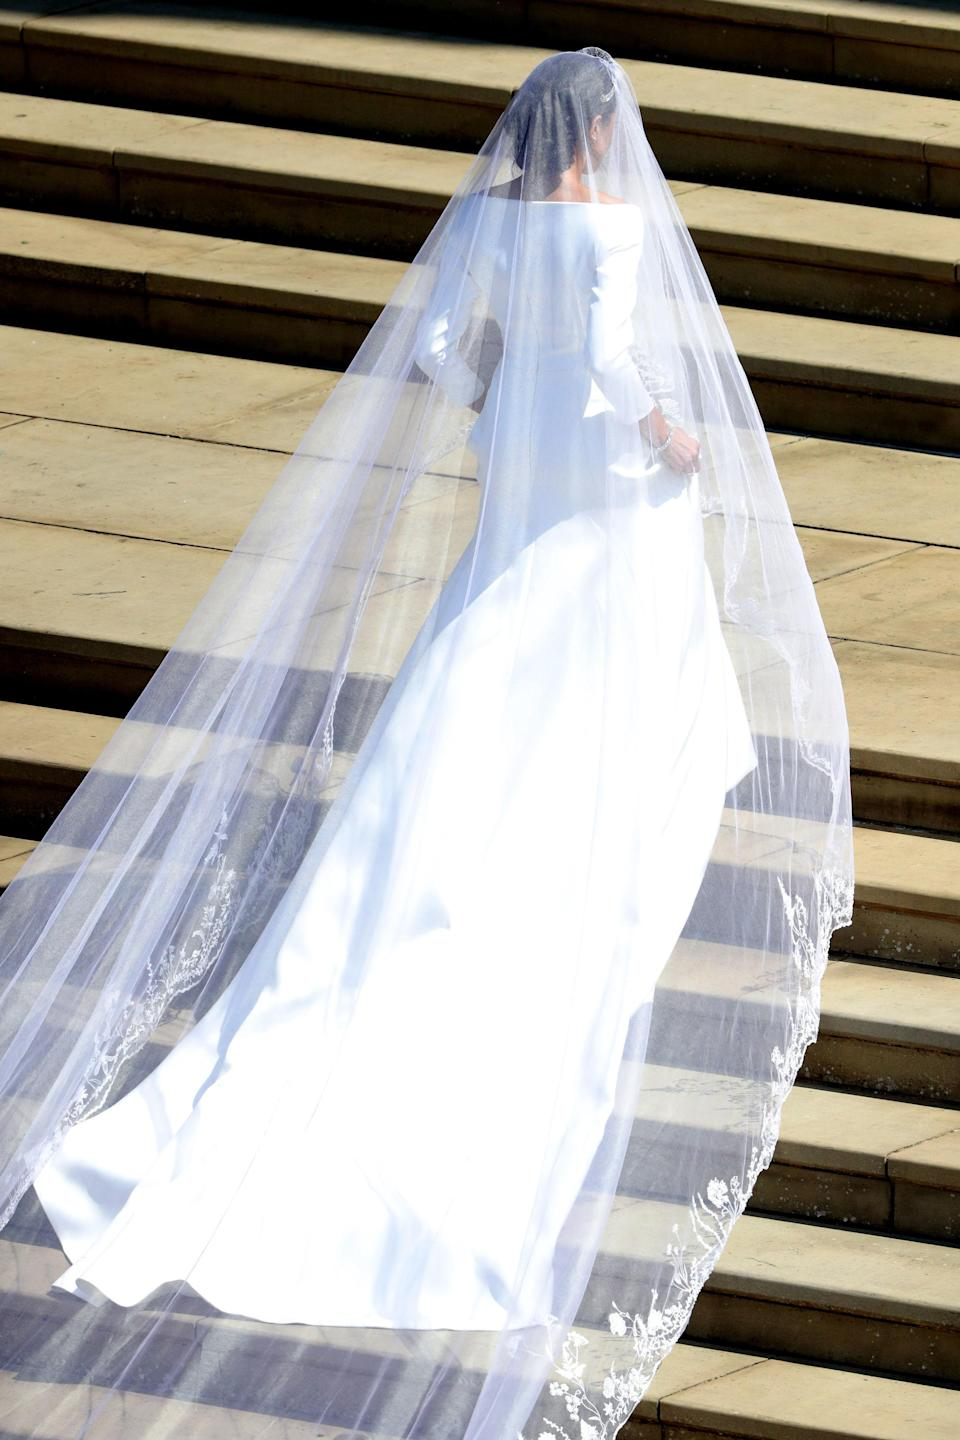 <p>Meghan Markle arrived at St George's Chapel at Windsor Castle for her wedding to Prince Harry wearing a custom dress by Givenchy's artistic director Clare Waight Keller. Boasting a boat neckline, cropped sleeves and a five-food veil, the dress has been lauded a masterpiece. <em>[Photo: Getty]</em> </p>